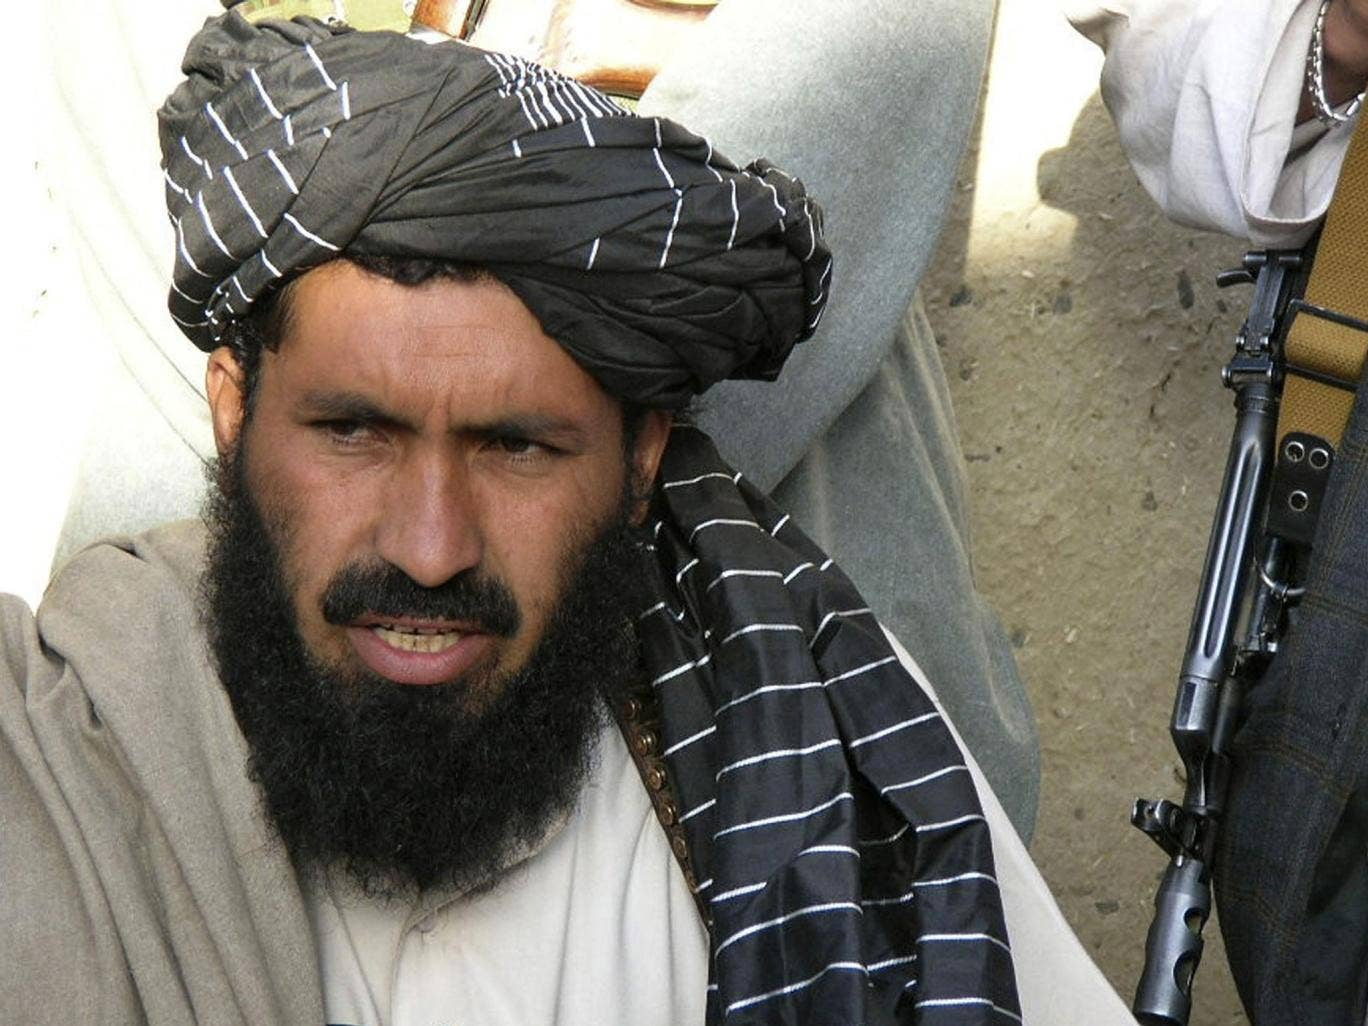 Maulvi Nazir was reportedly among nine people killed in the first strike in the village of Angoor Adda in South Waziristan